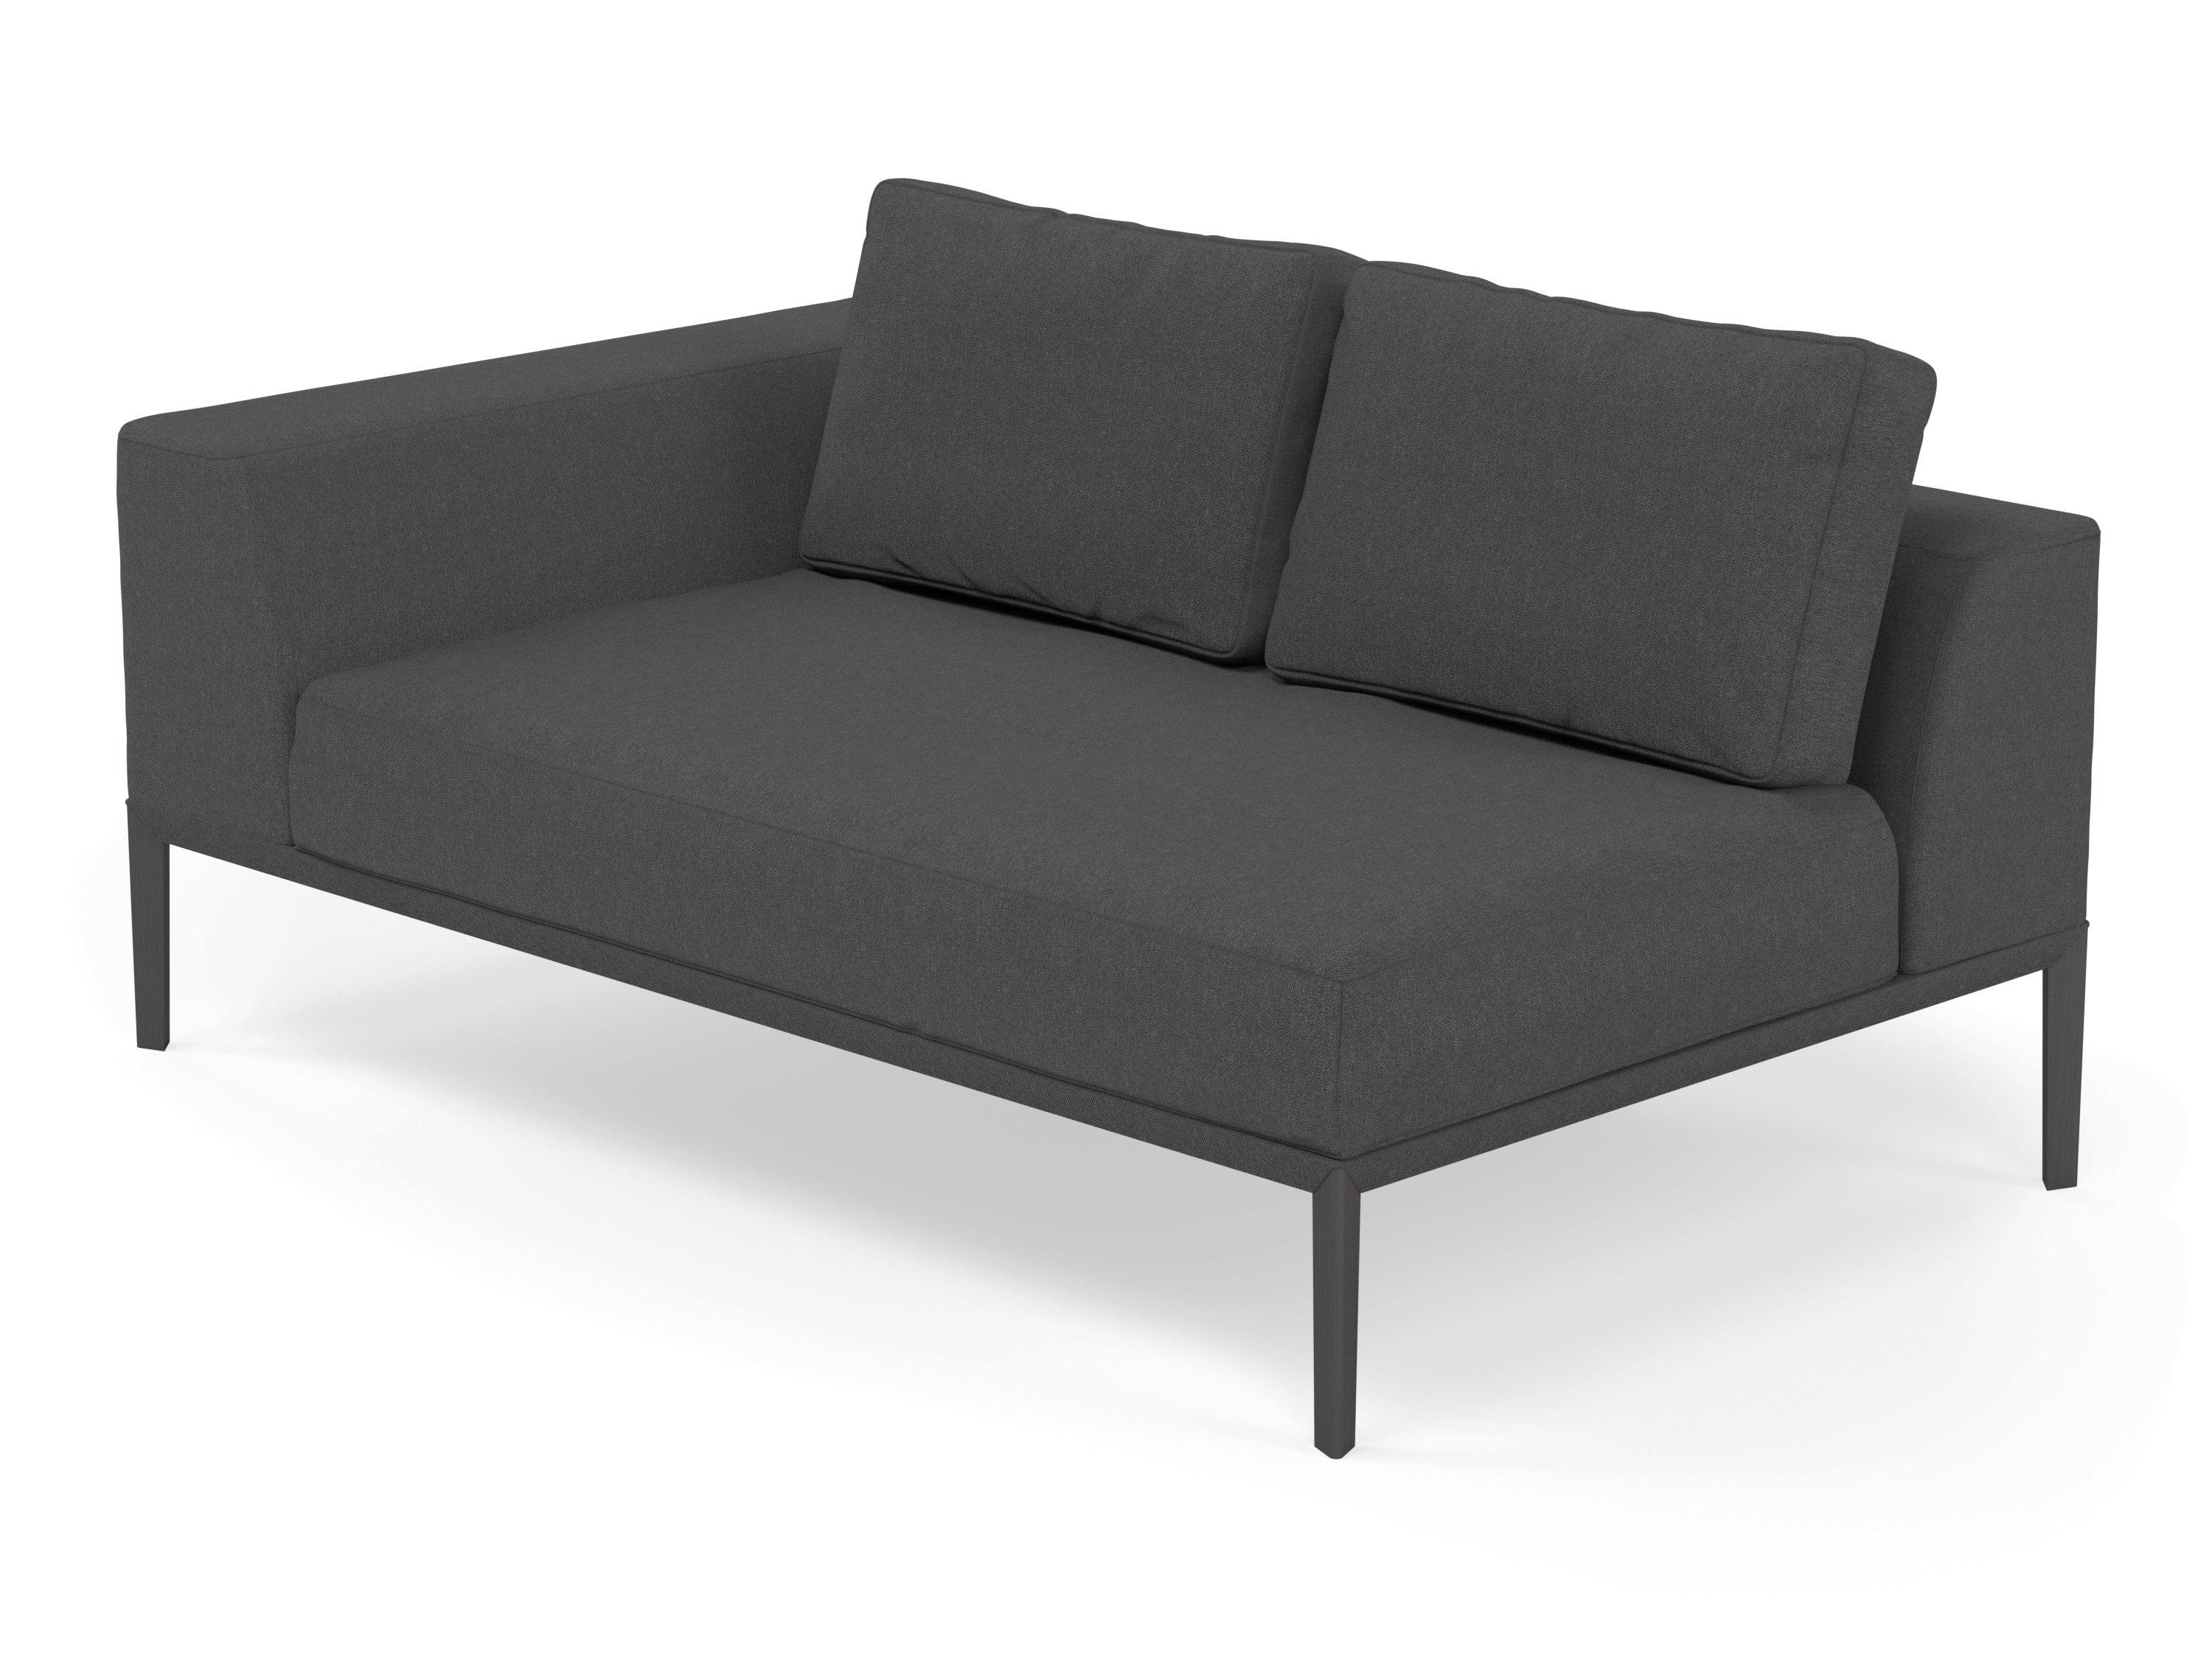 Modern 2 Seater Chaise Lounge Style Sofa with Right Armrest in Slate Grey  Fabric